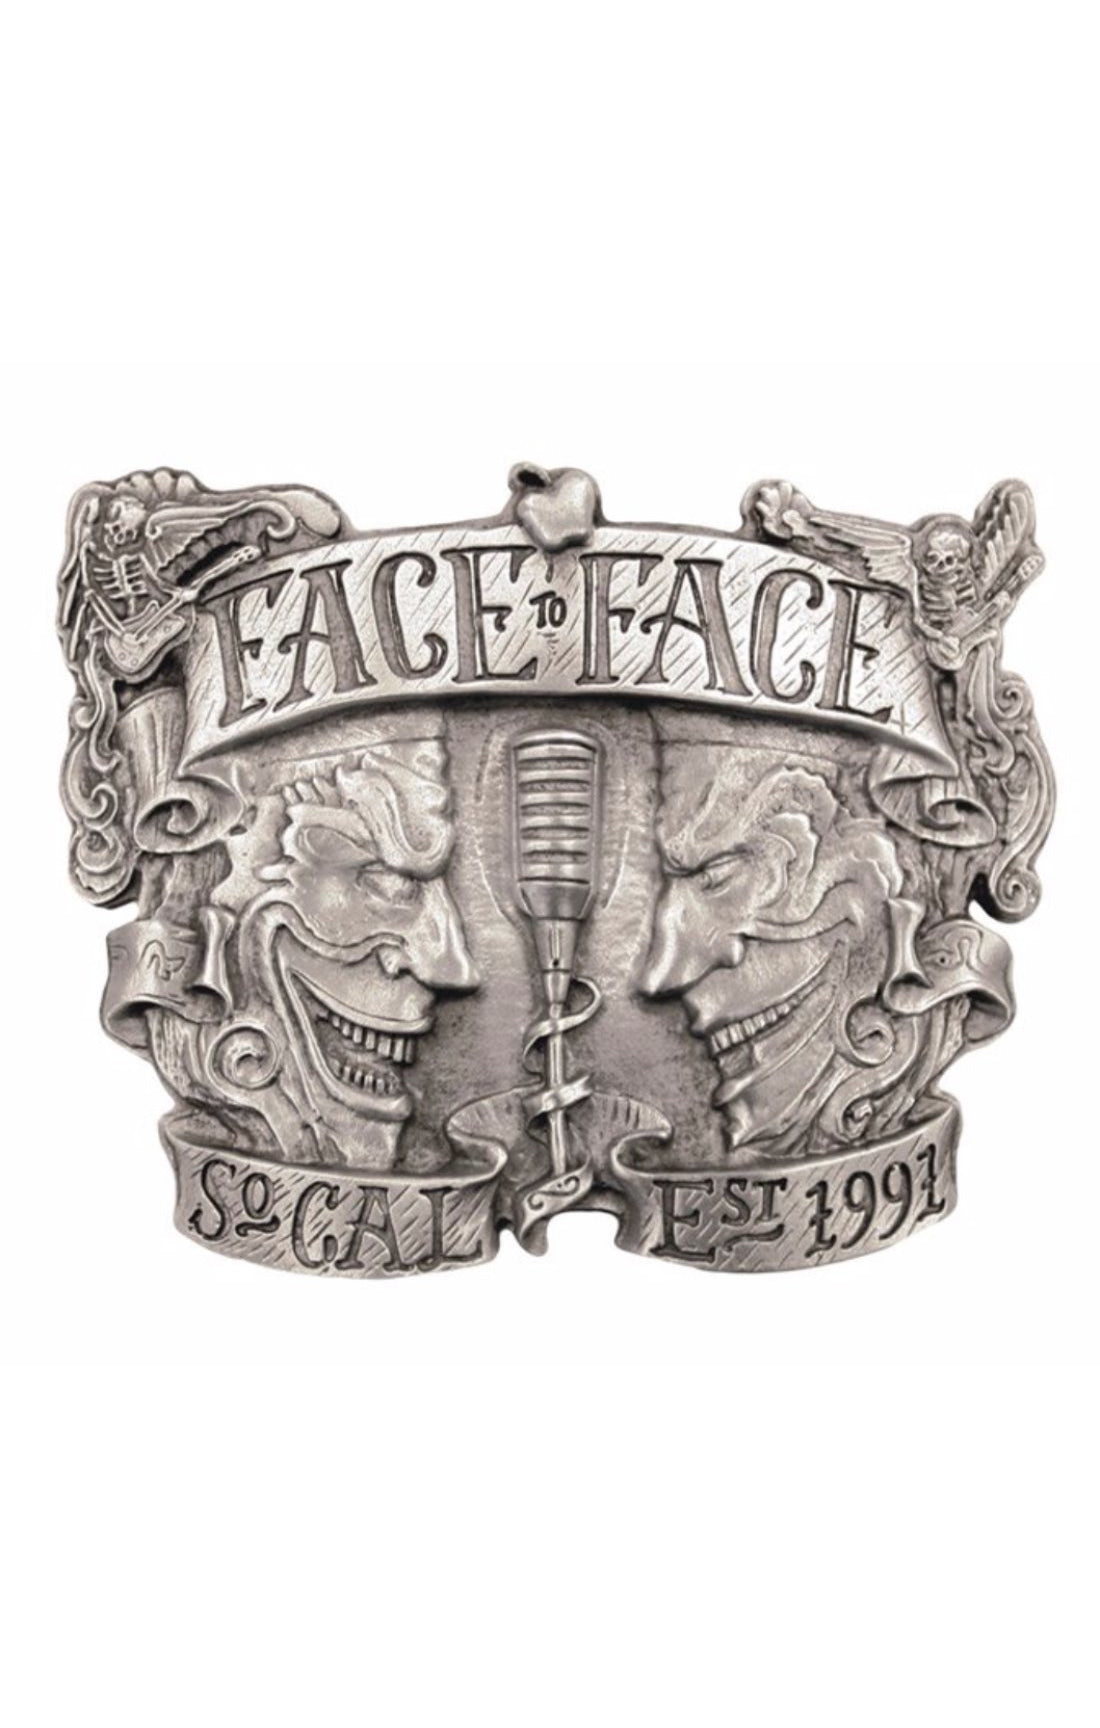 The FACE TO FACE Belt Buckle